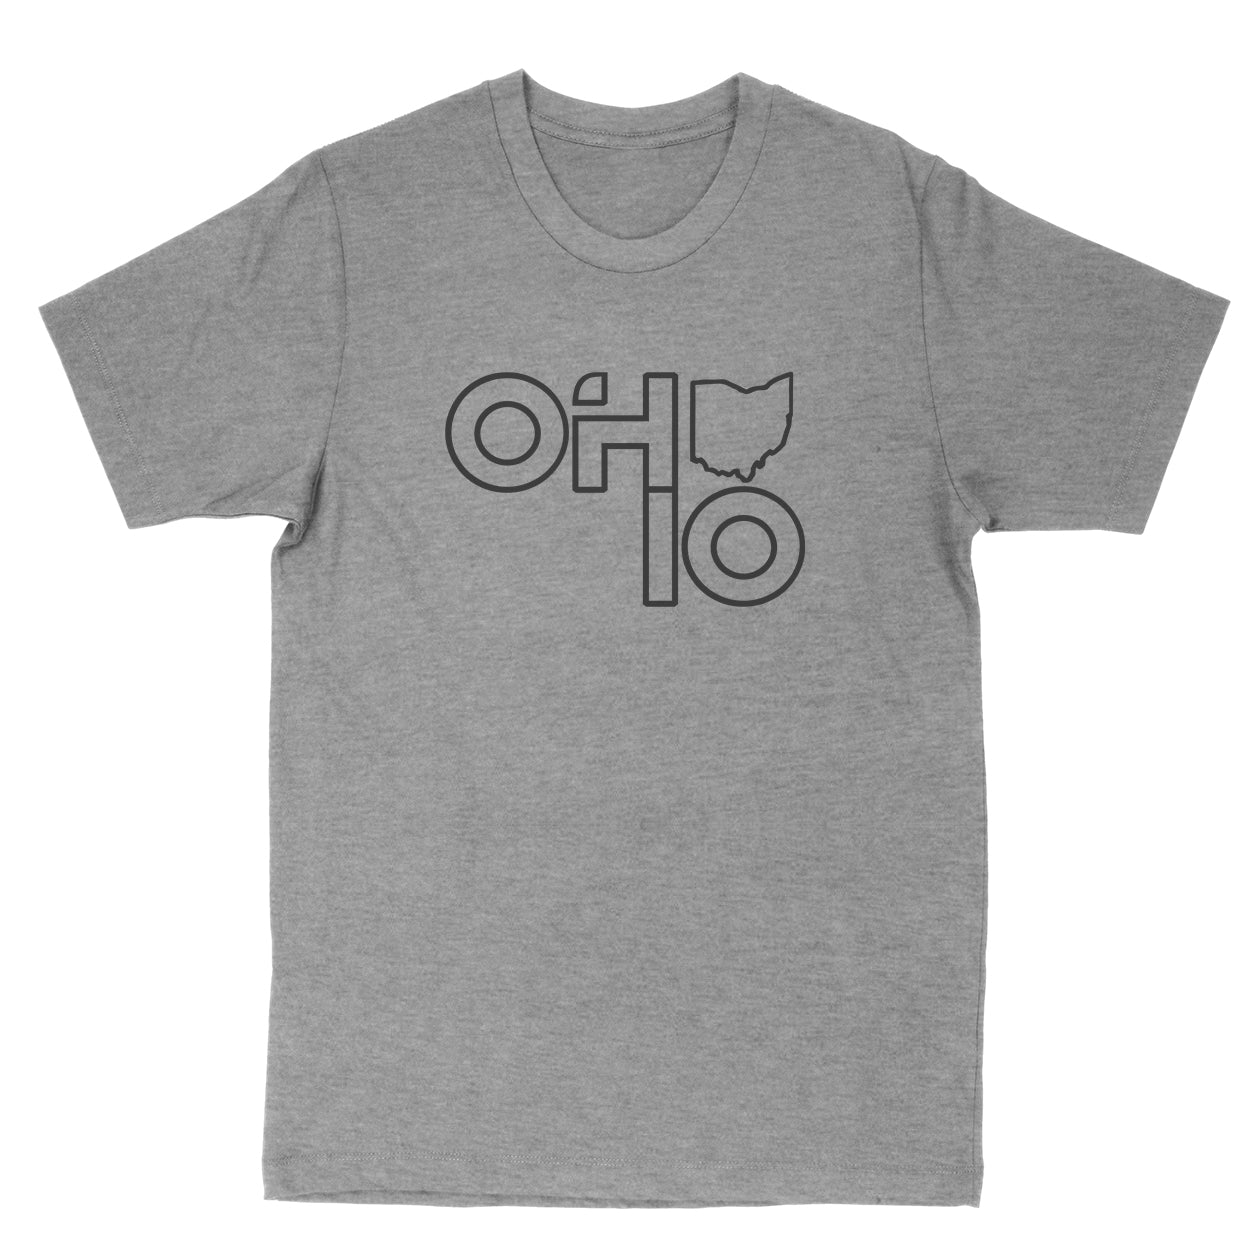 Ohio Stacked Men's T-Shirt - Clothe Ohio - Soft Ohio Shirts